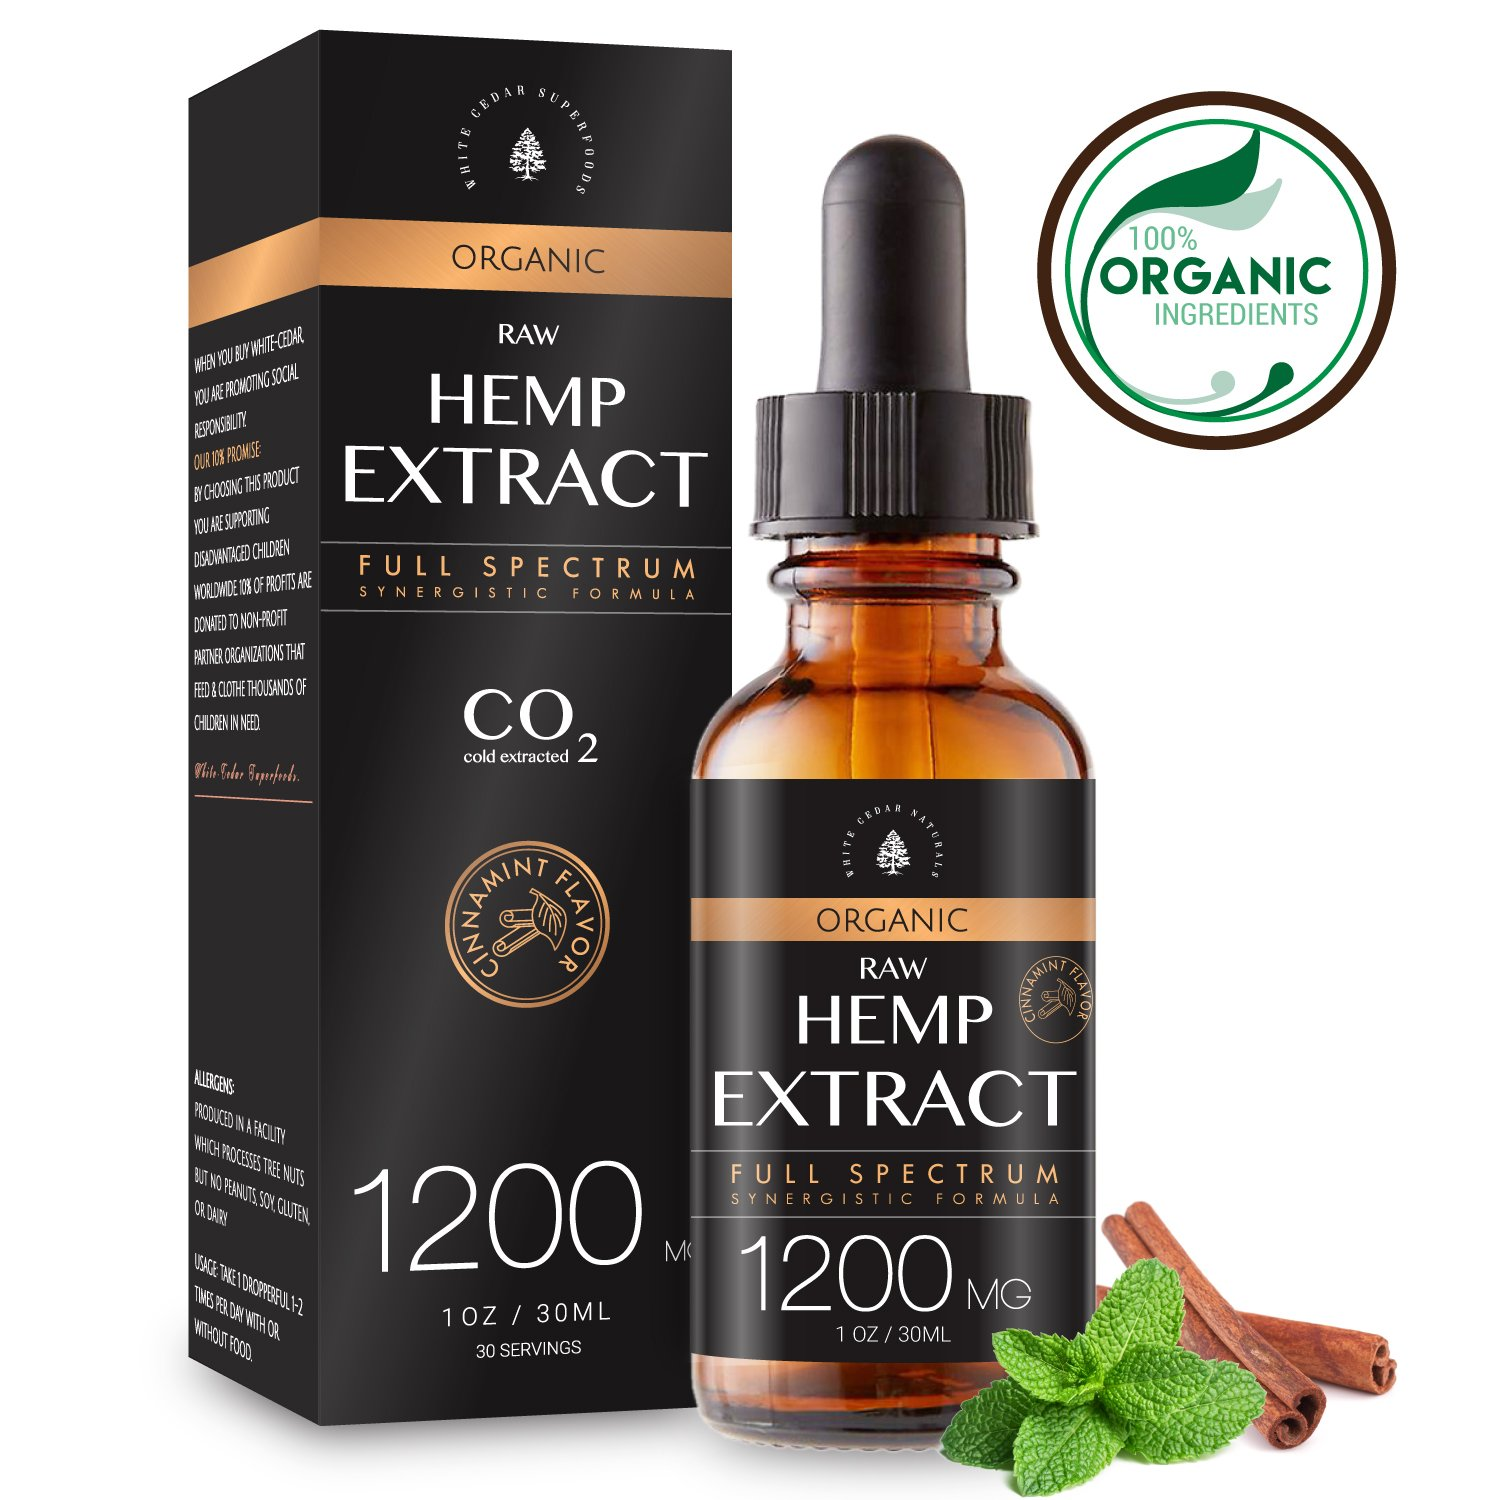 Organic Hemp Extract for Pain & Anxiety Relief (1200MG), Cinnamint Flavor, Full Spectrum, Blended with Organic Hemp Seed Oil for Optimal Absorption, CO2 Cold Extracted, Rich in MCT Fatty Acids, 1oz